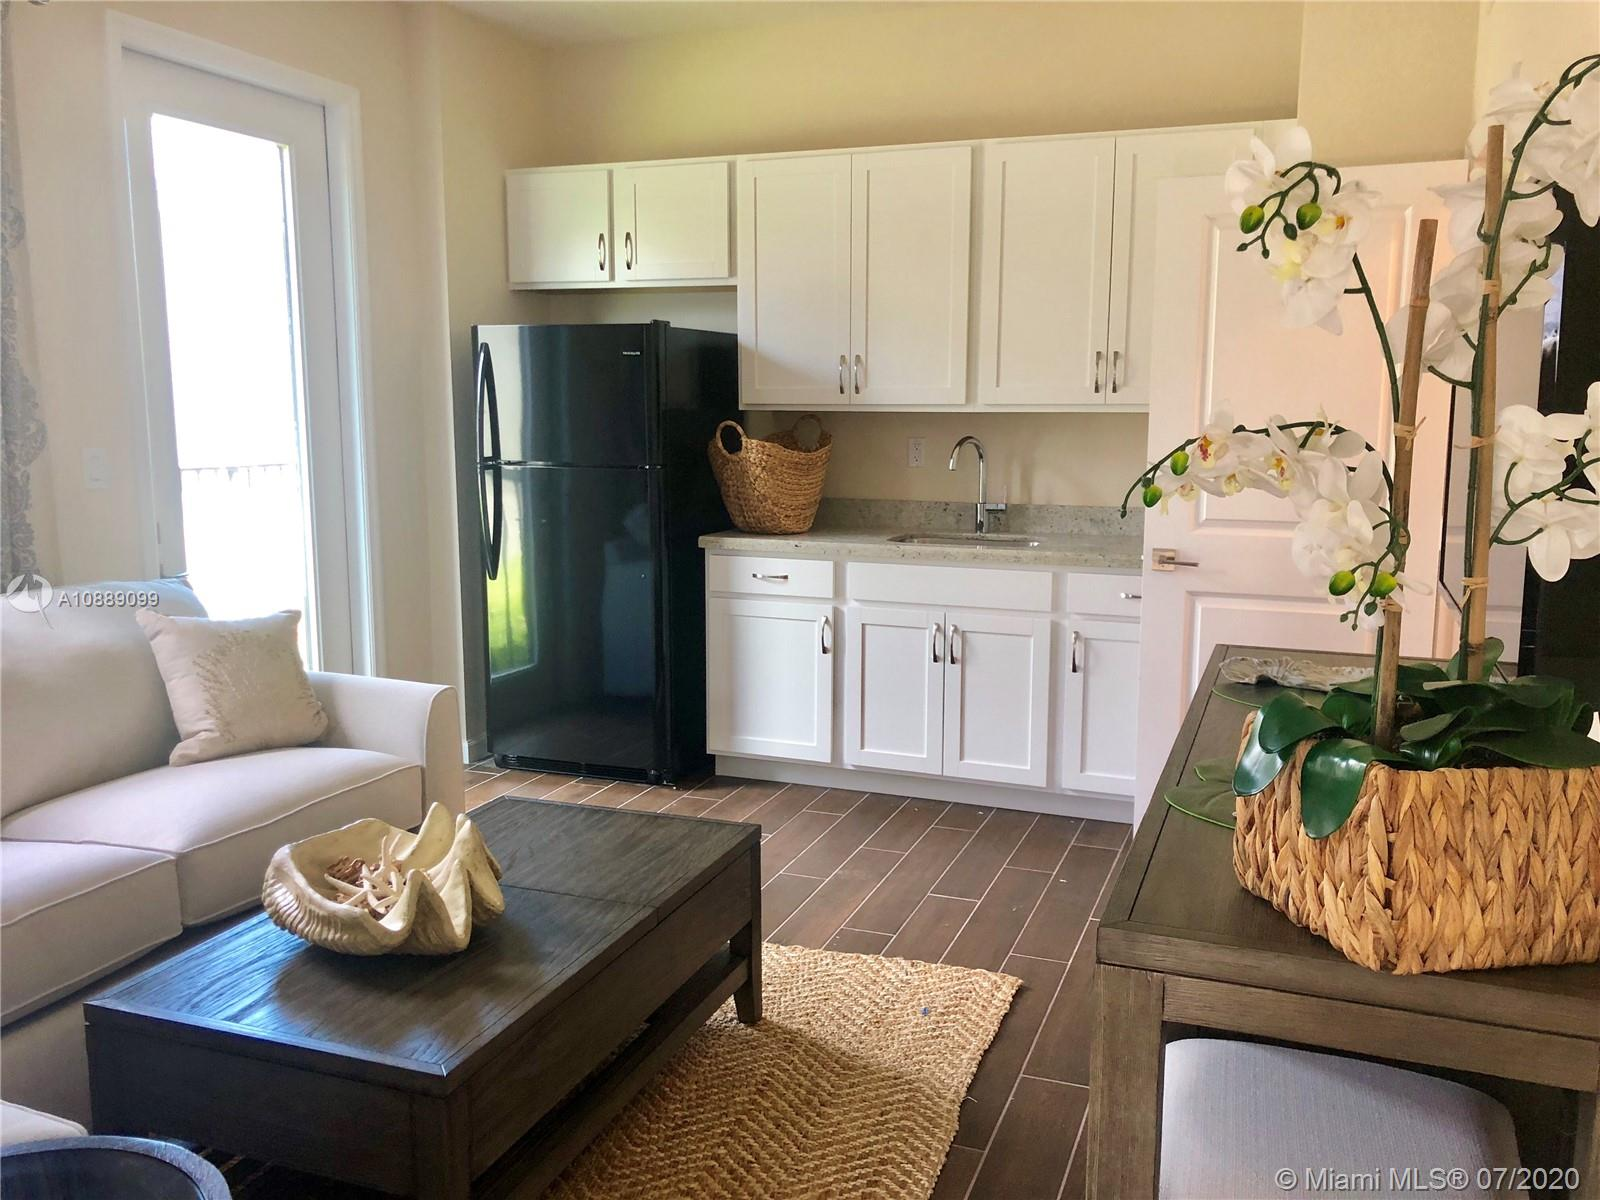 New Construction multi-gen home renting In-Laws Quarters. Full 1 bed 1 bath with kitchenette, living area, private entrance, parking, all utilities Included. Full size washer and dryer inside unit. Accordian shutters, no carpet. Easy to show.